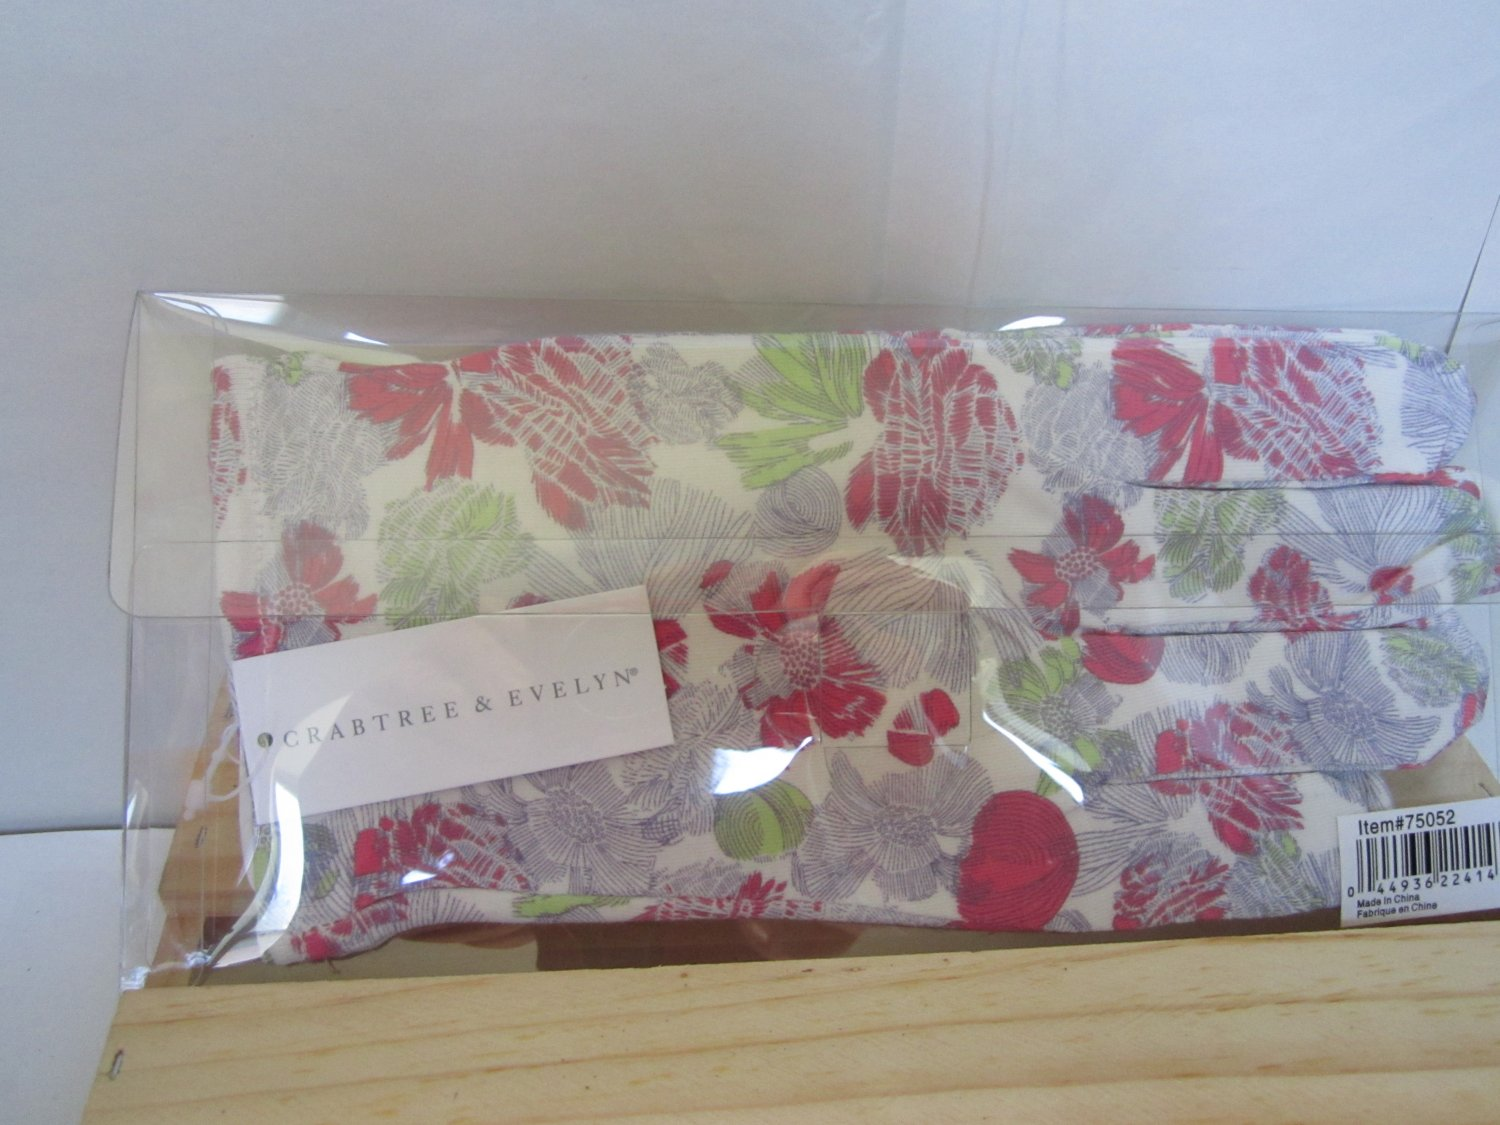 Crabtree Evelyn Moisture Gloves sleep treatment Arum Han Collection - Retired NWT  travel gloves